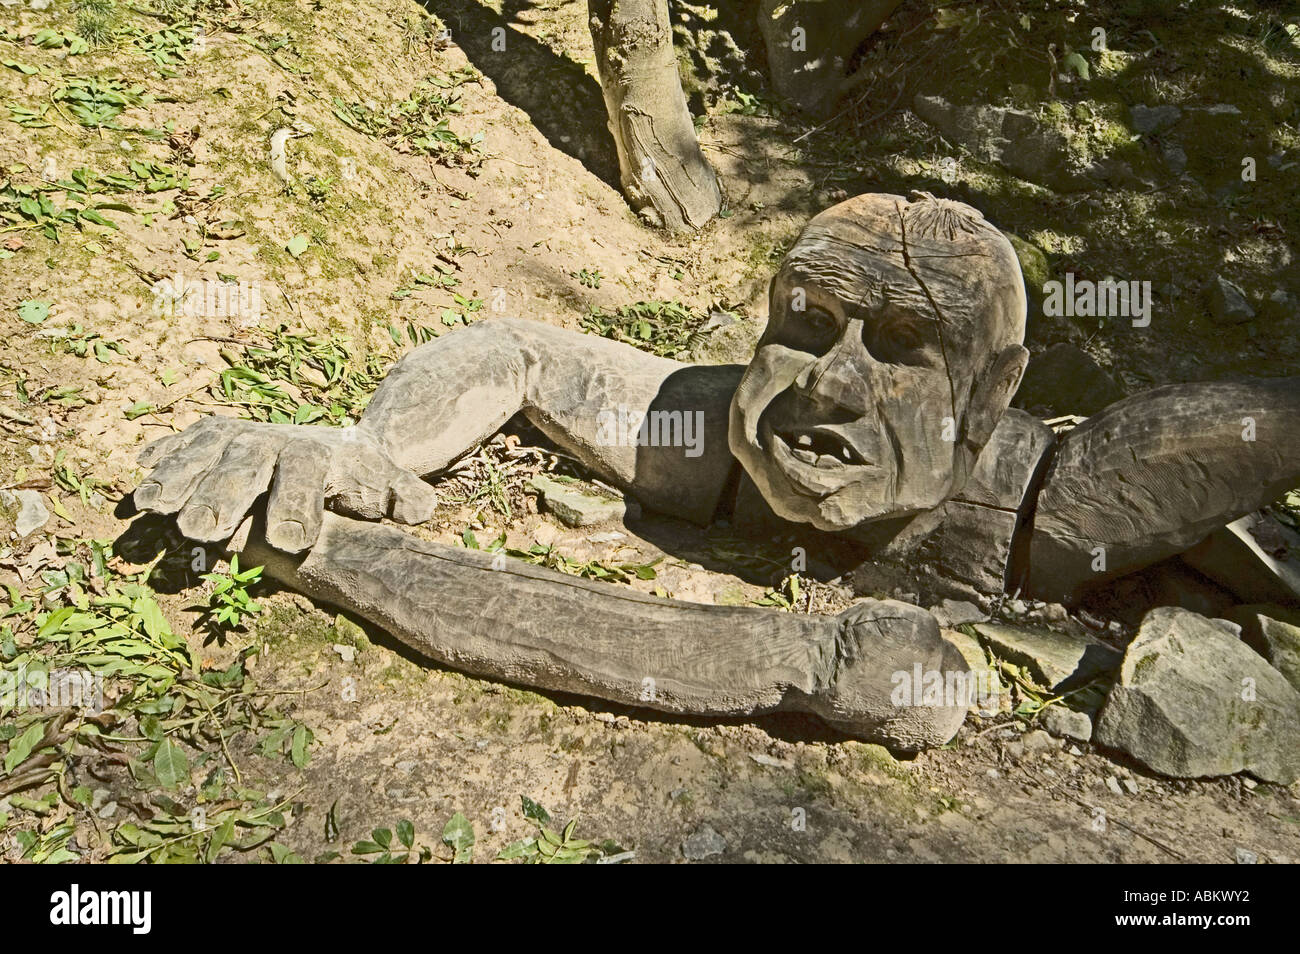 Wood carving of a Troll on the Sculpture Trail at the Crich